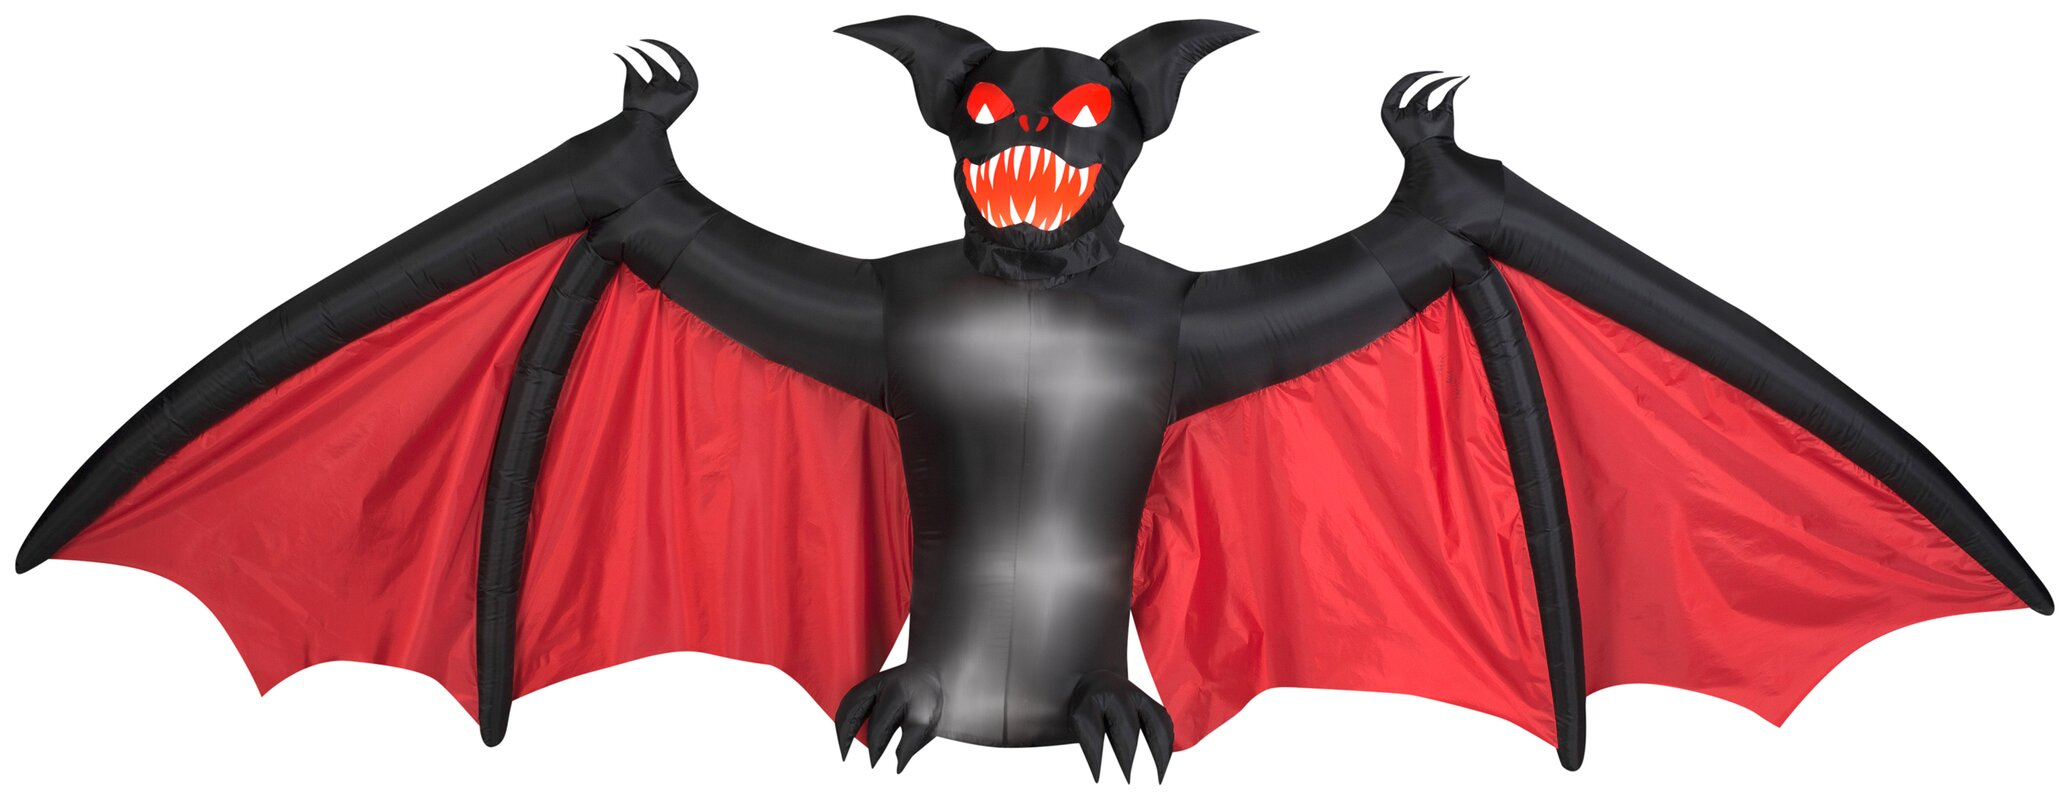 The holiday aisle animated scary bat halloween decoration for Animated halloween decoration